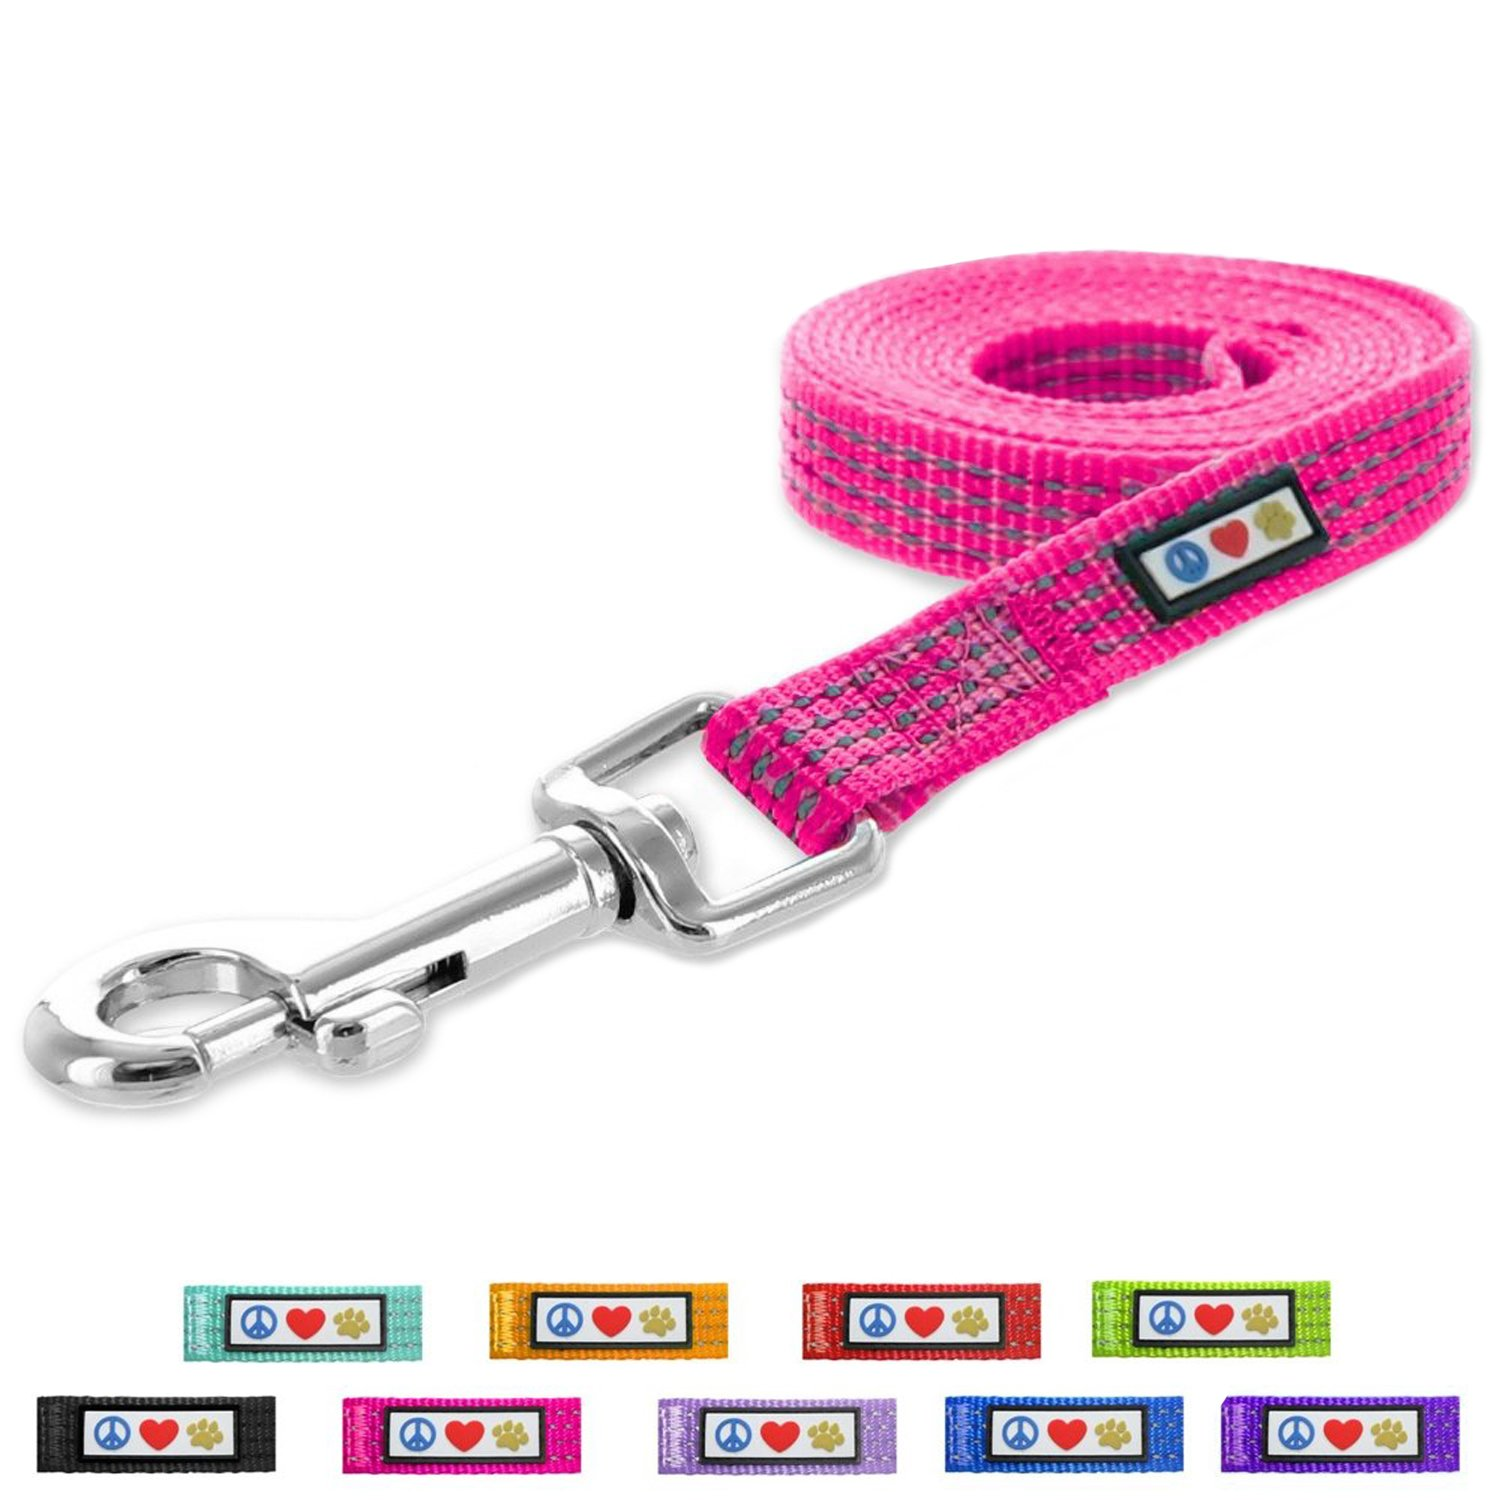 Pawtitas Pet / Puppy t 6 - feet Reflective Dog Leash Matching Collar and Harness sold separately.